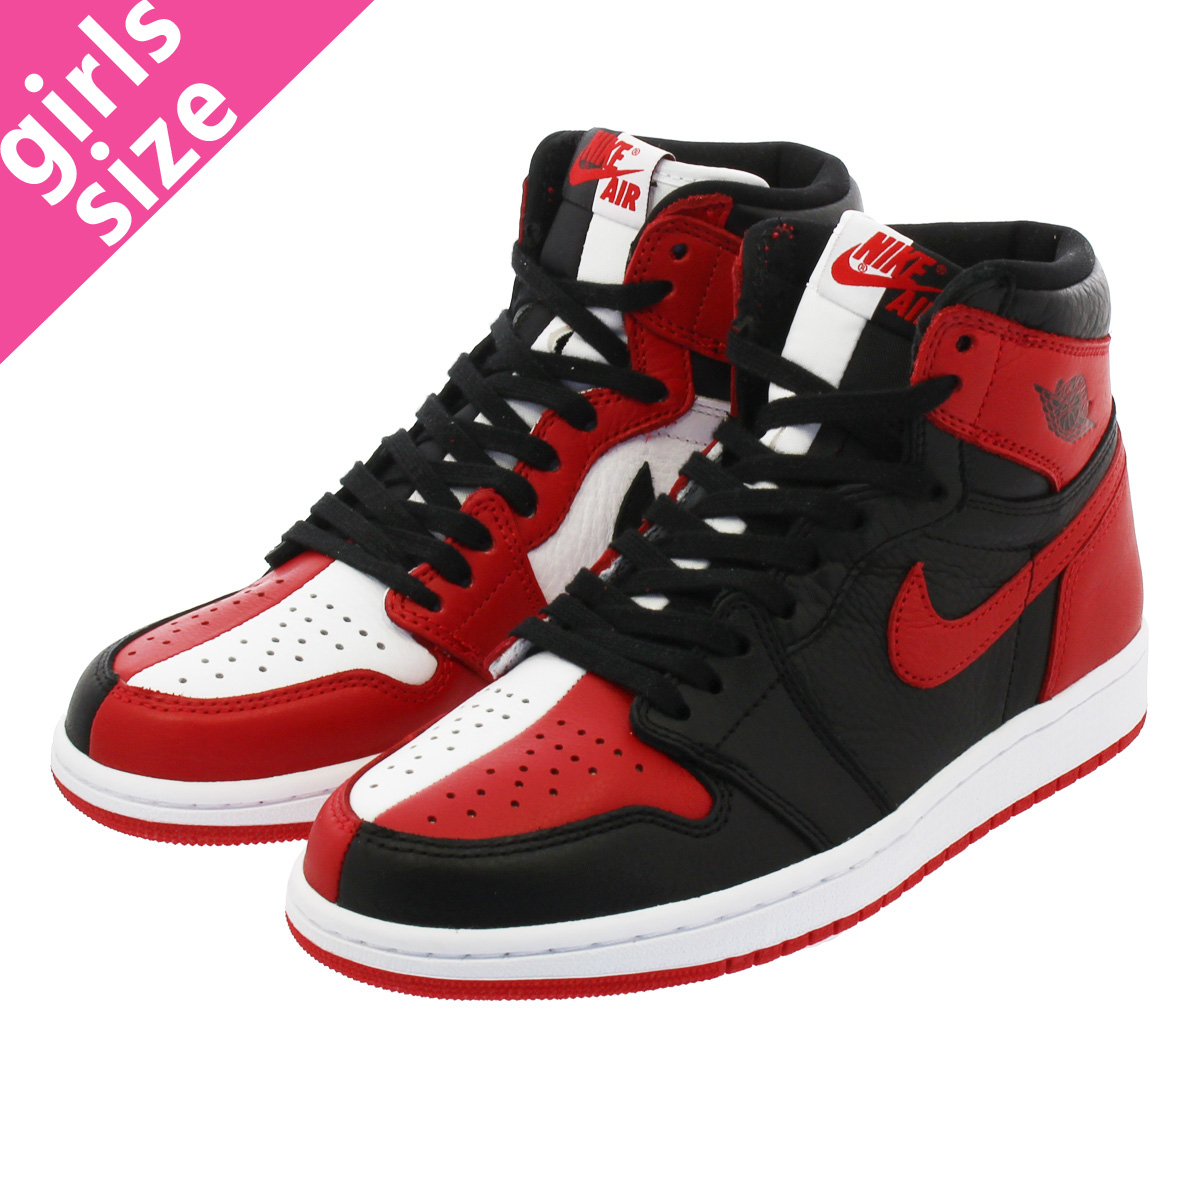 super popular ab91e 97996 NIKE AIR JORDAN 1 RETRO HIGH OG Nike Air Jordan 1 nostalgic high OG BLACK   ...